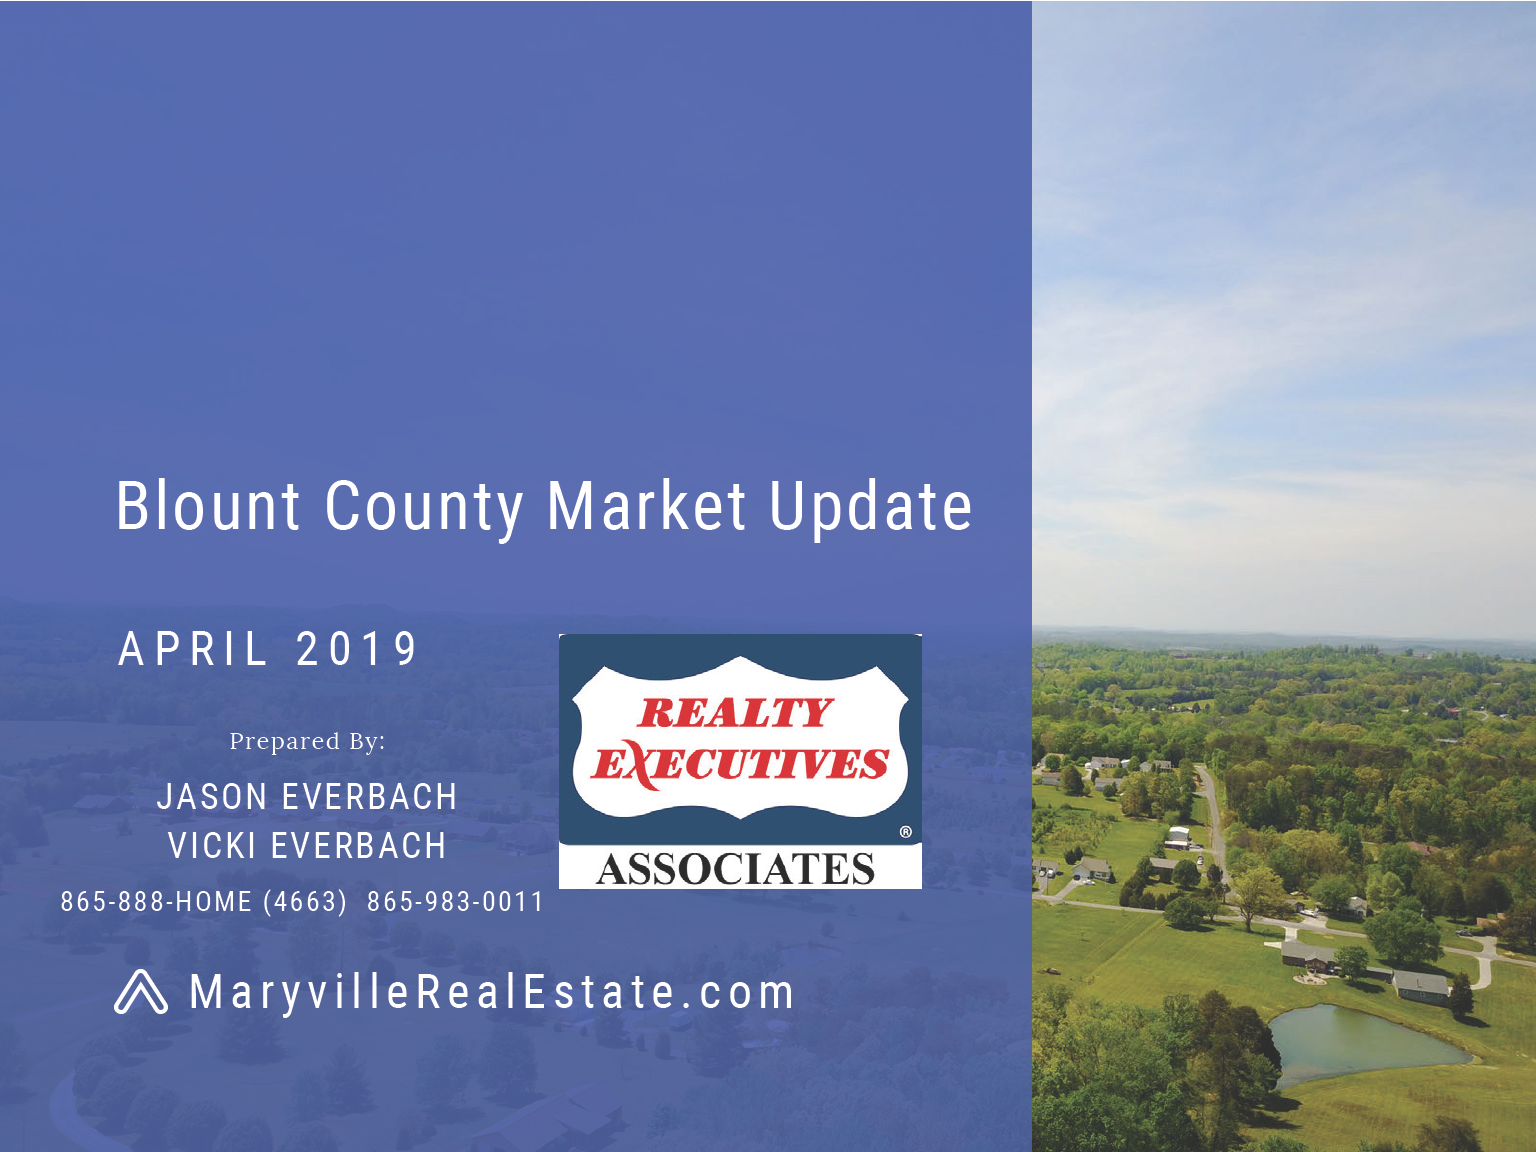 March 2019 Maryville & Blount County Real Estate Market Update